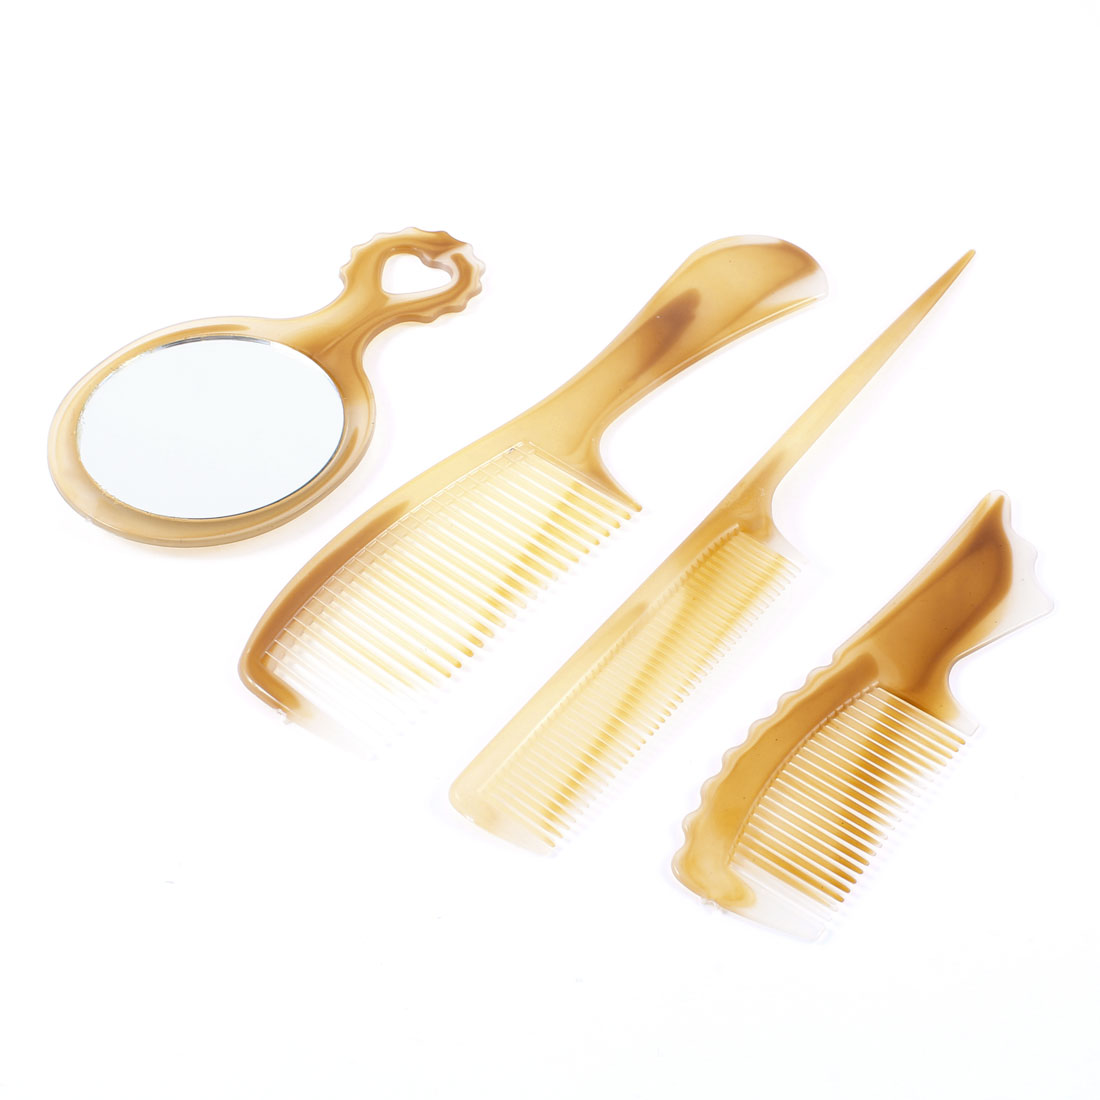 4 Pcs Yellow Plastic Wide Teeth Narrow Teeth Mirror Comb Comestic Set